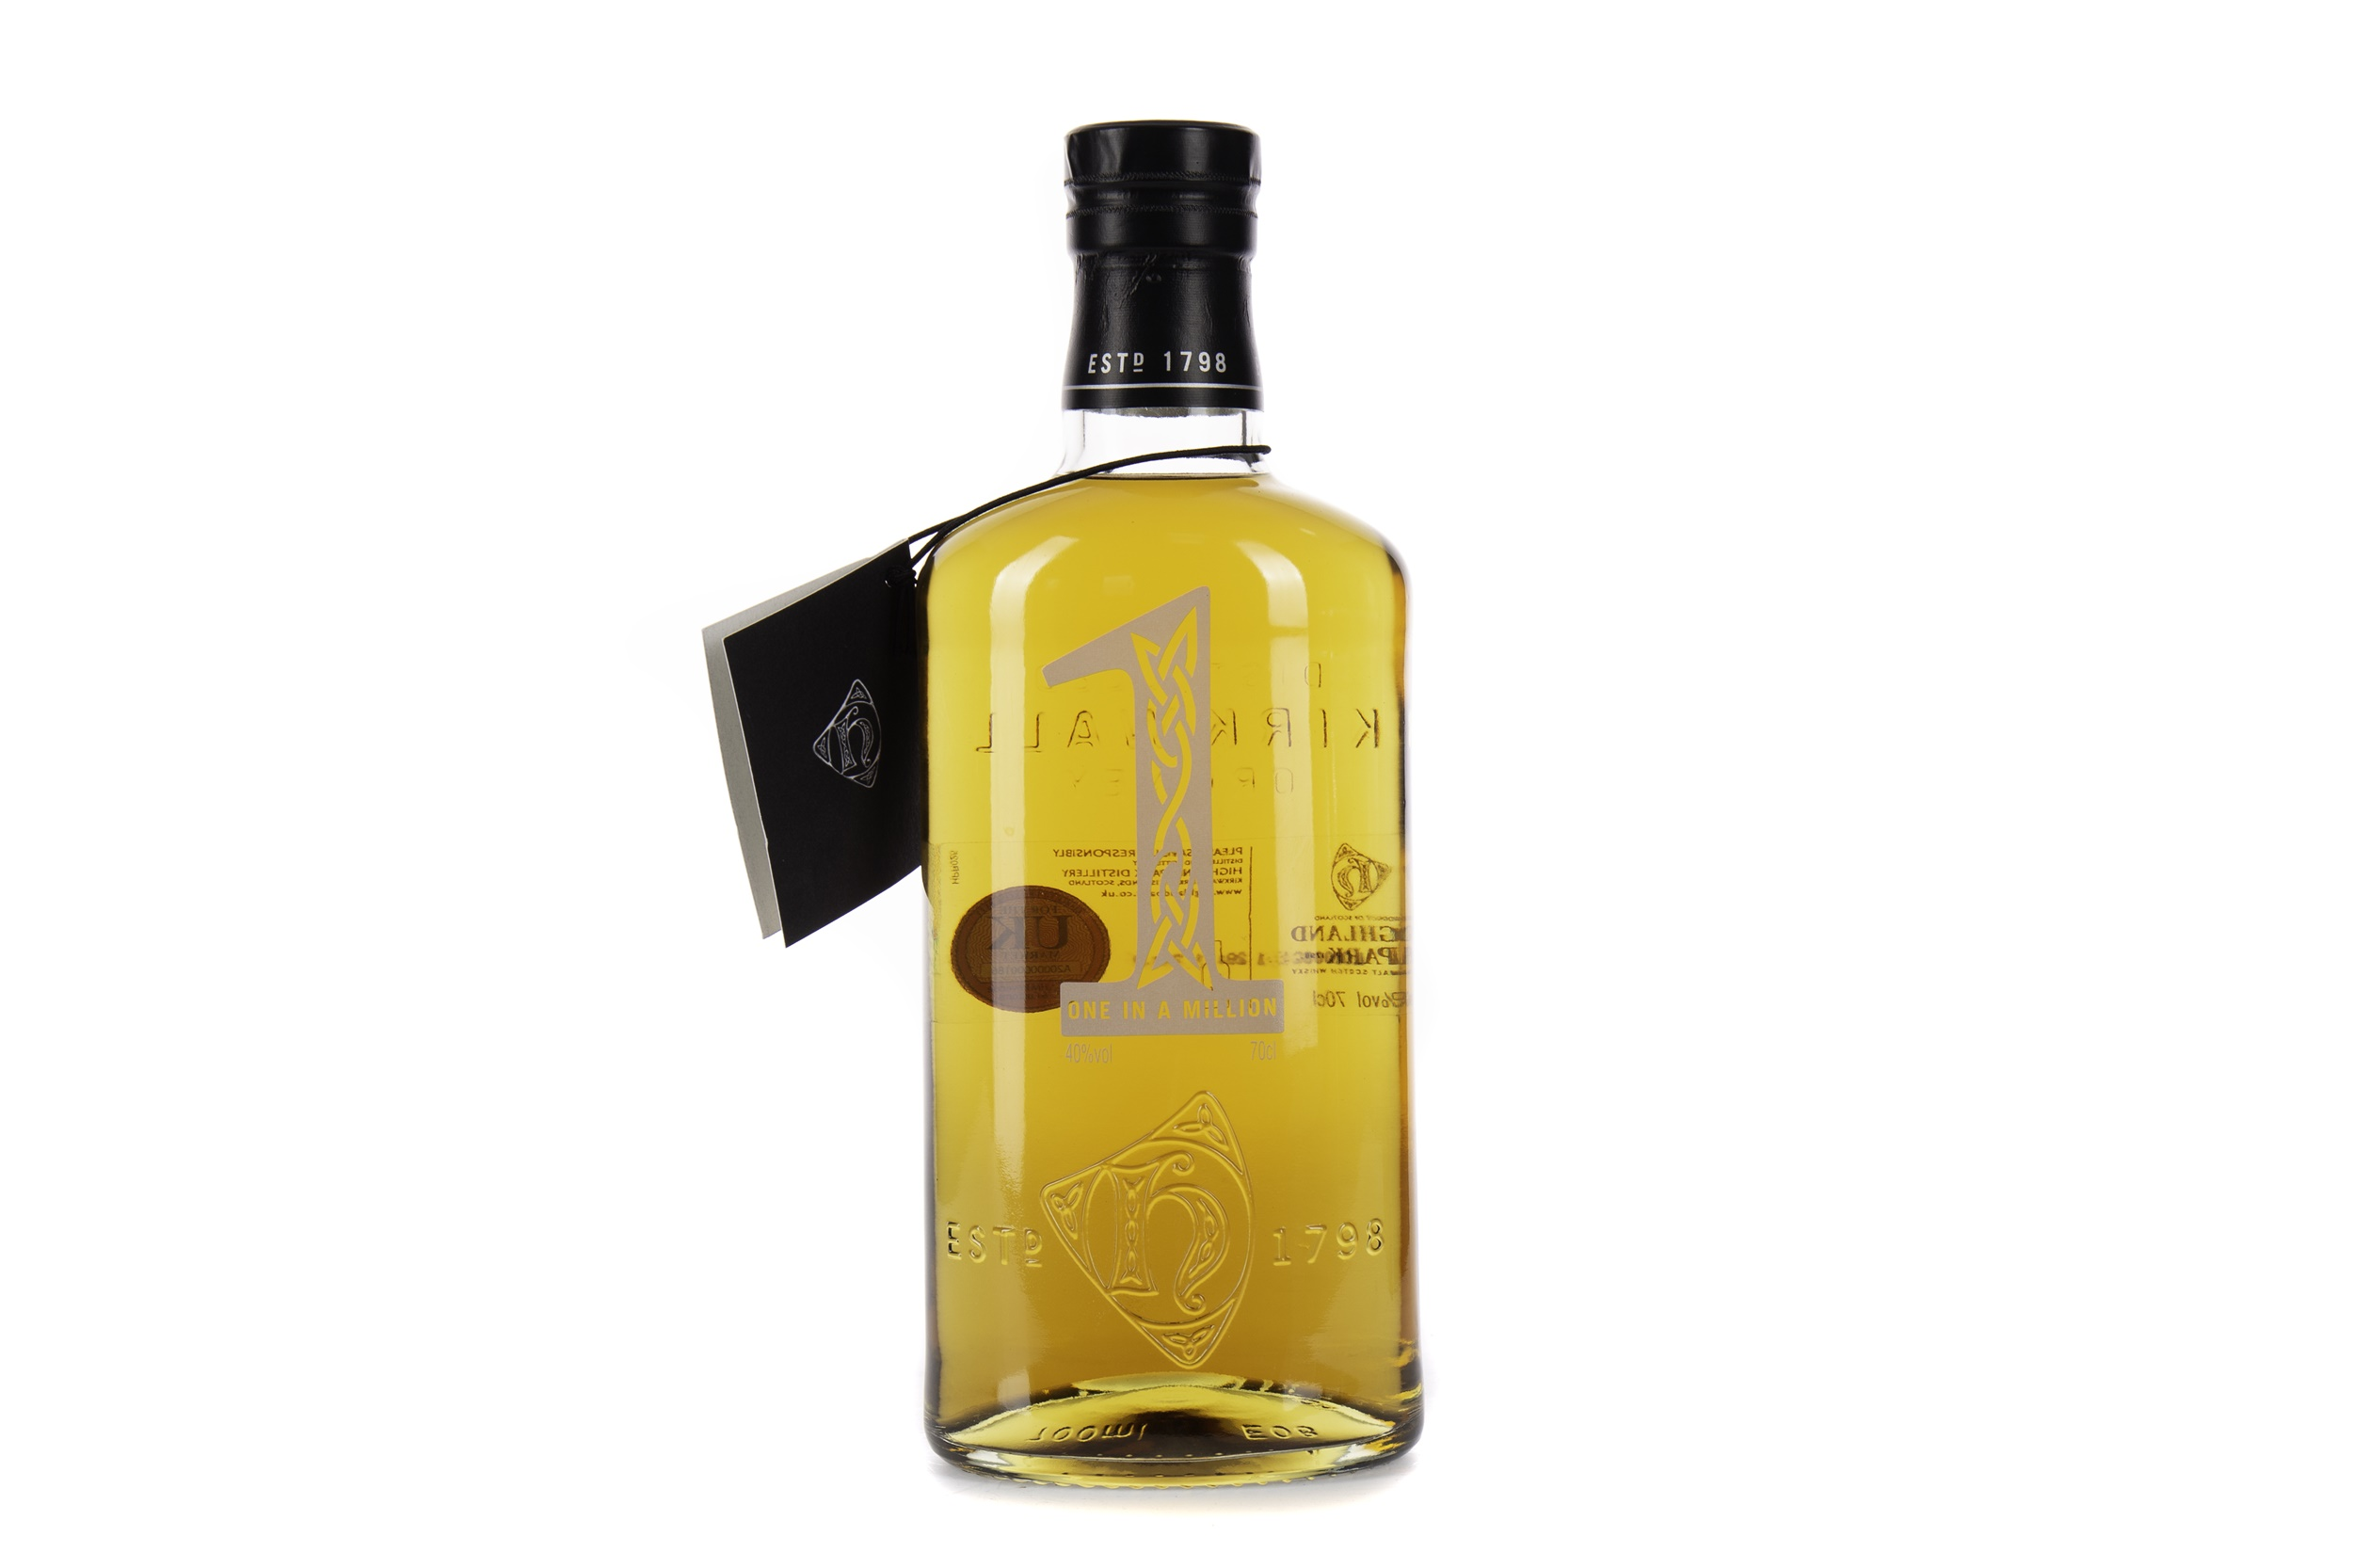 HIGHLAND PARK ONE IN A MILLION AGED 12 YEARS